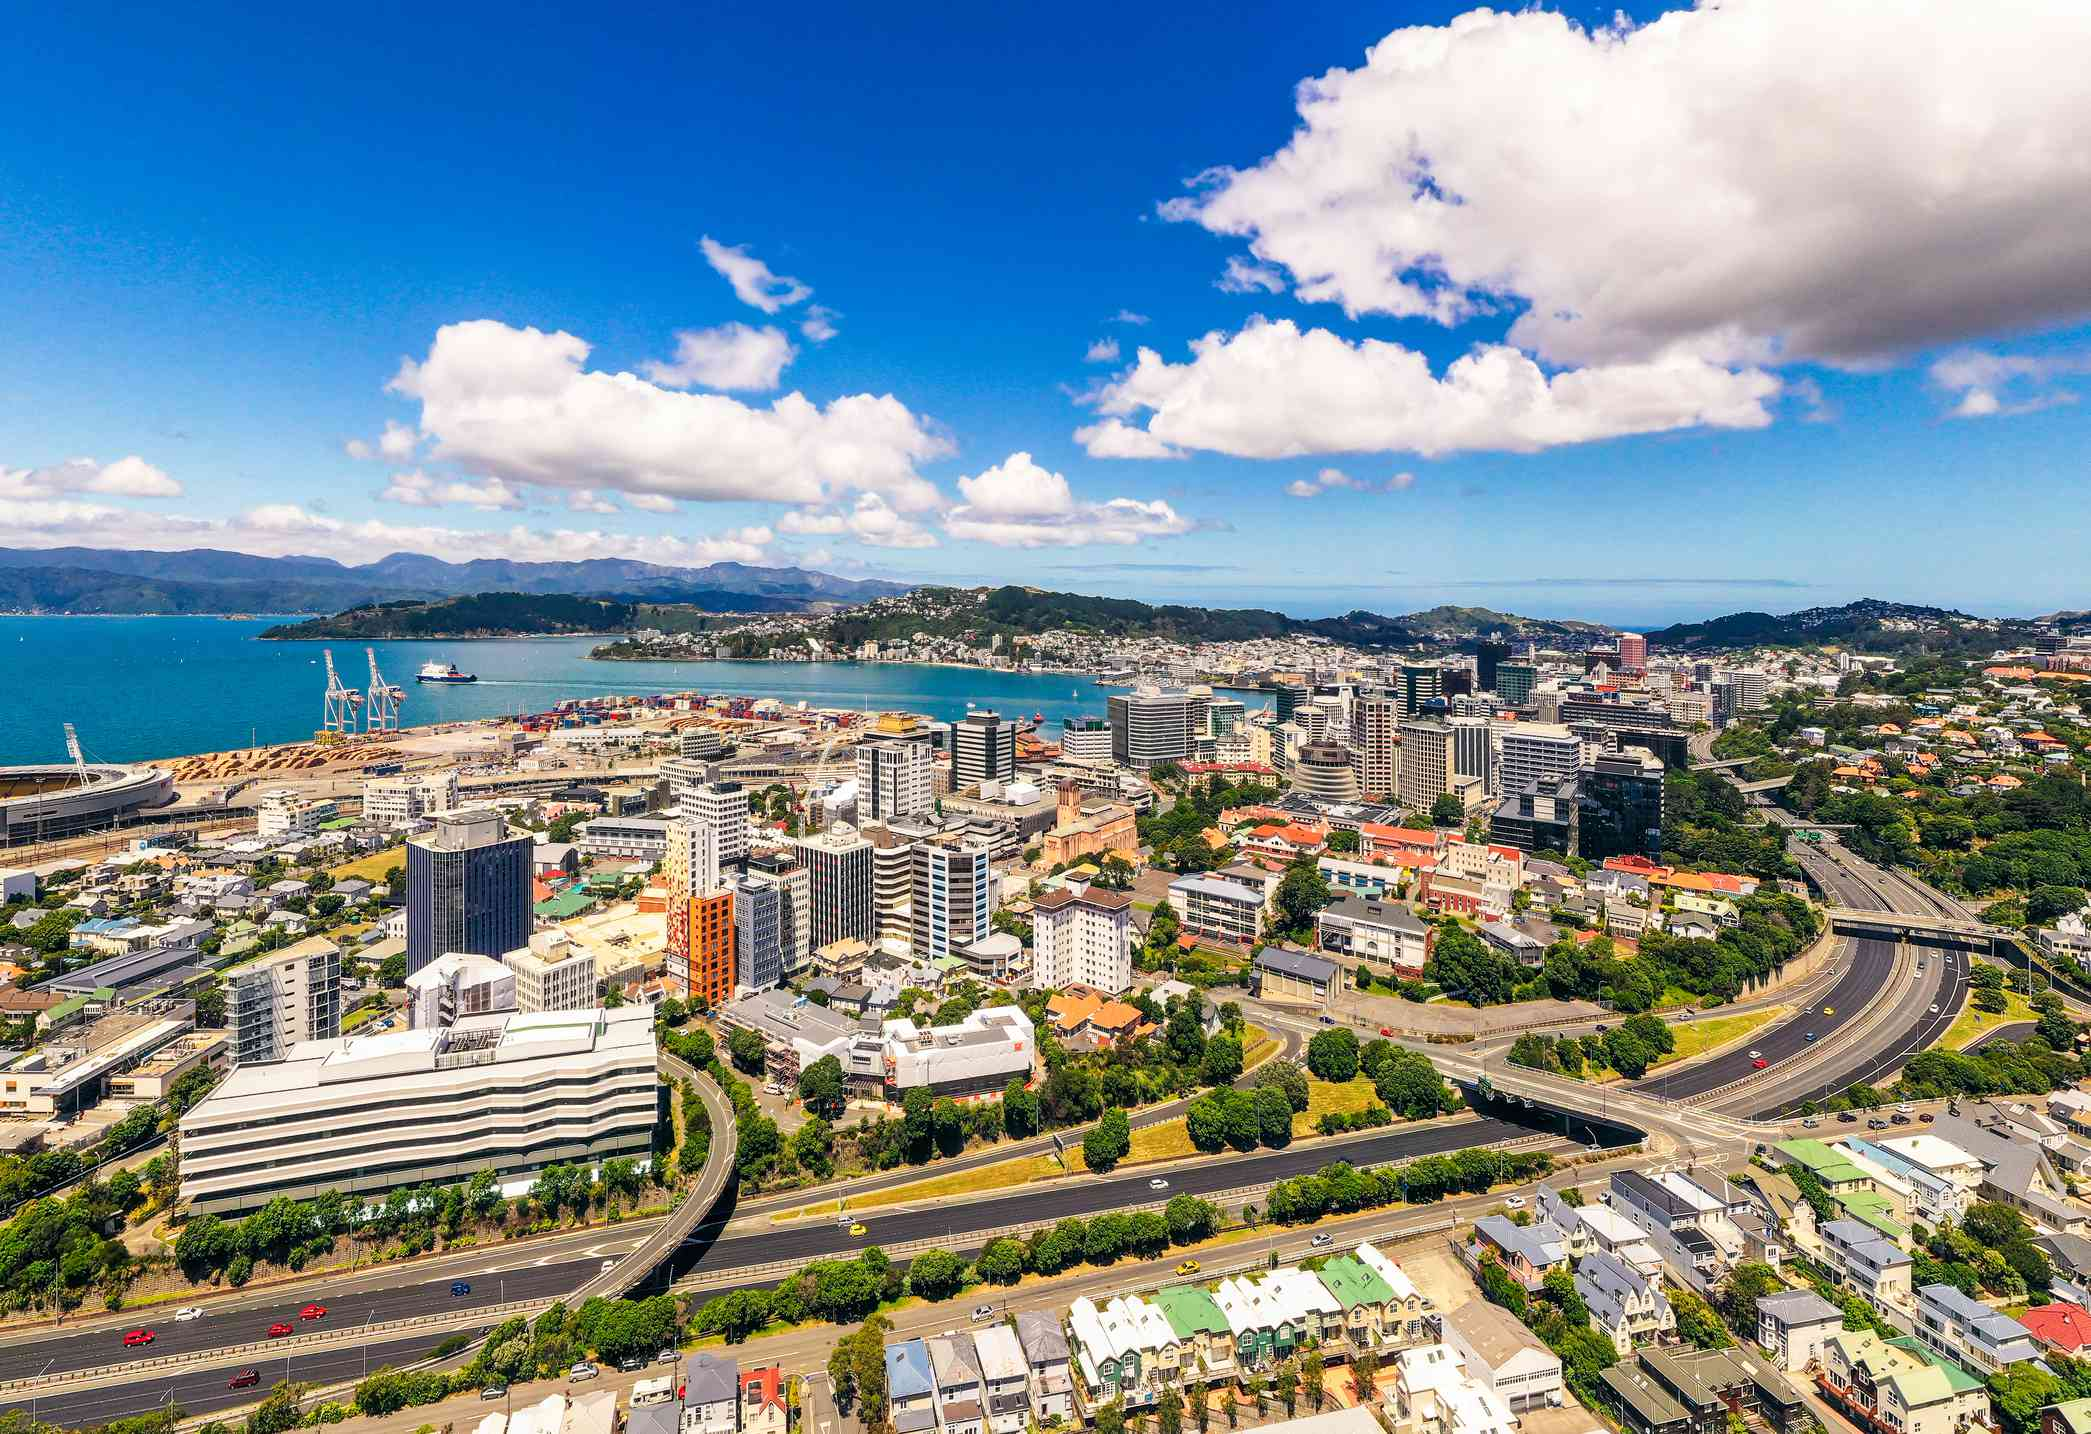 high angle view of Wellington with clean roads lined with trees in the foreground, followed by high rise buildings, and a bright blue river, with mountains in the background on a sunny day with a blue sky and white clouds